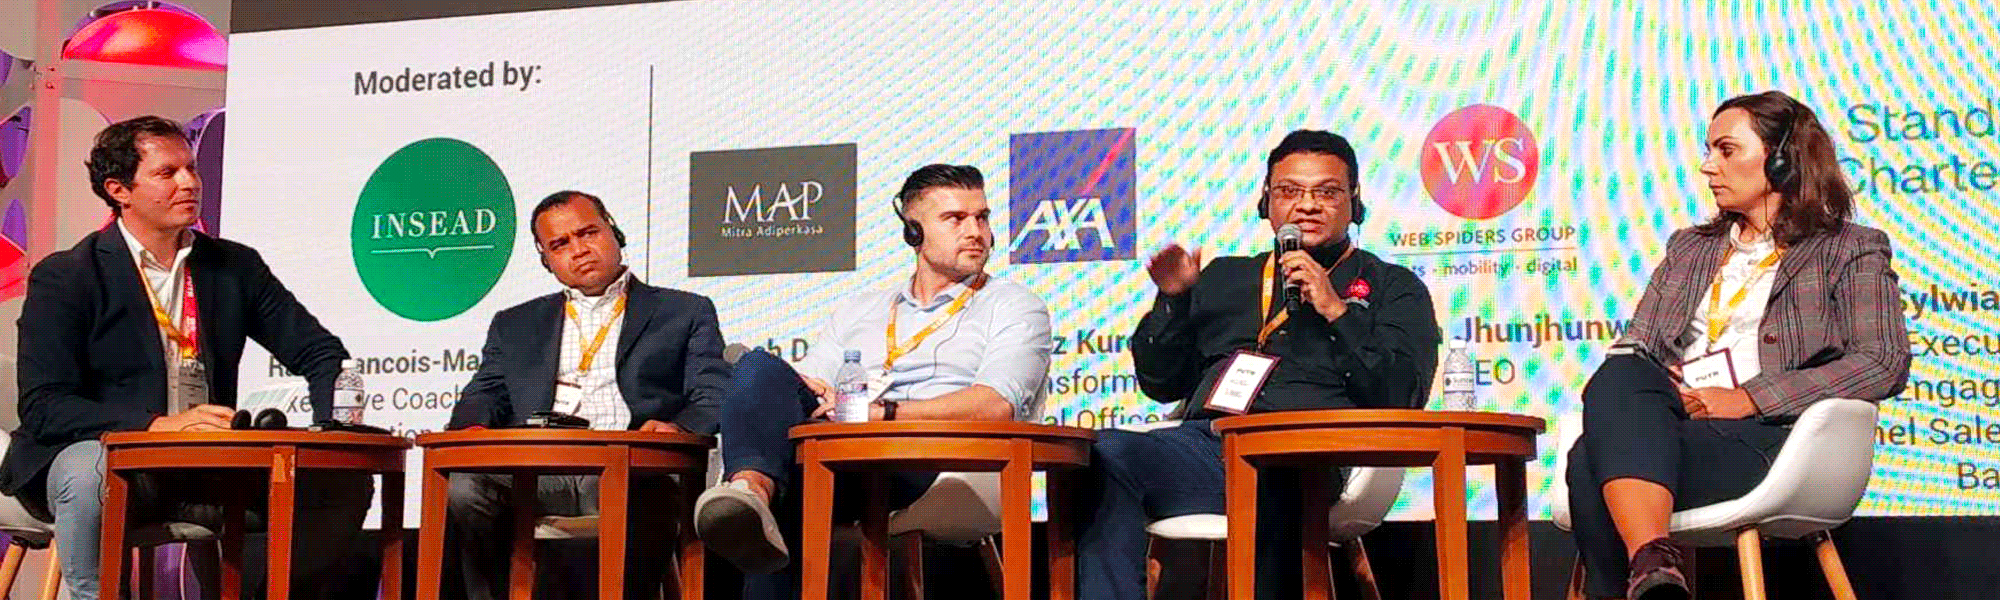 FUTR Singapore 2019 and Web Spiders Come Together To Transform The Event Attendee Experience